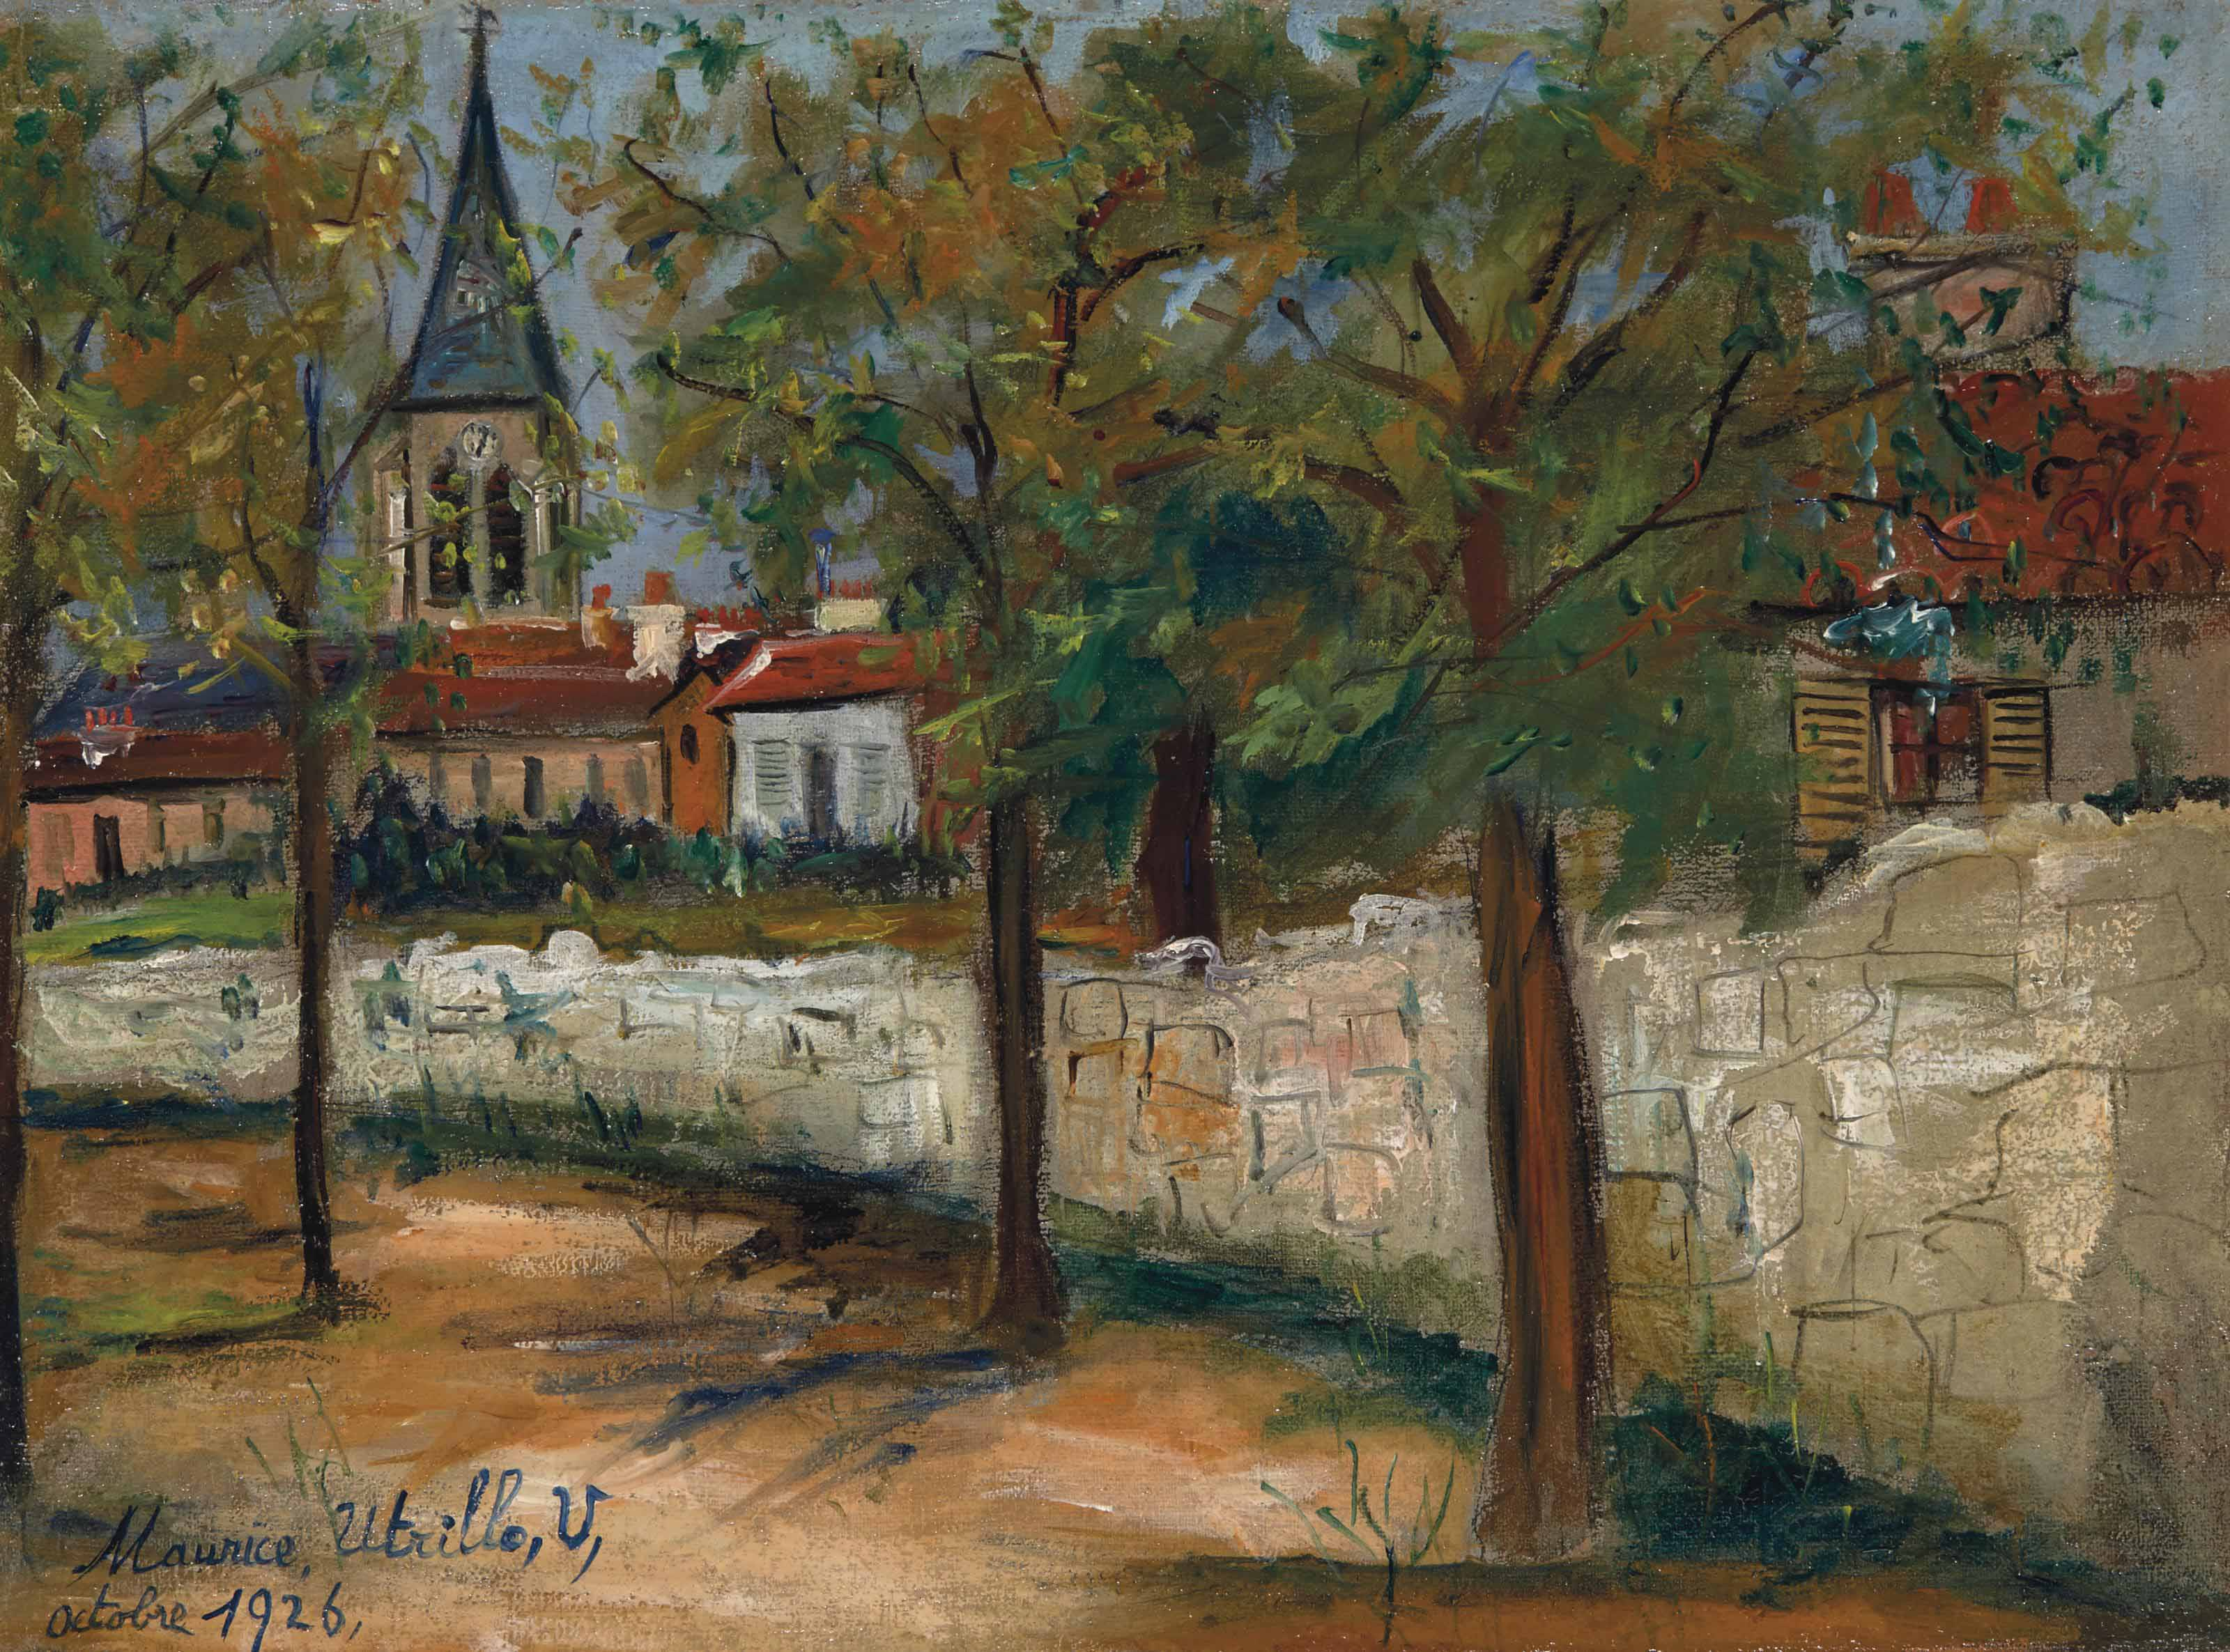 https://www.christies.com/img/LotImages/2015/CSK/2015_CSK_10425_0804_000(maurice_utrillo_eglise_de_campagne).jpg